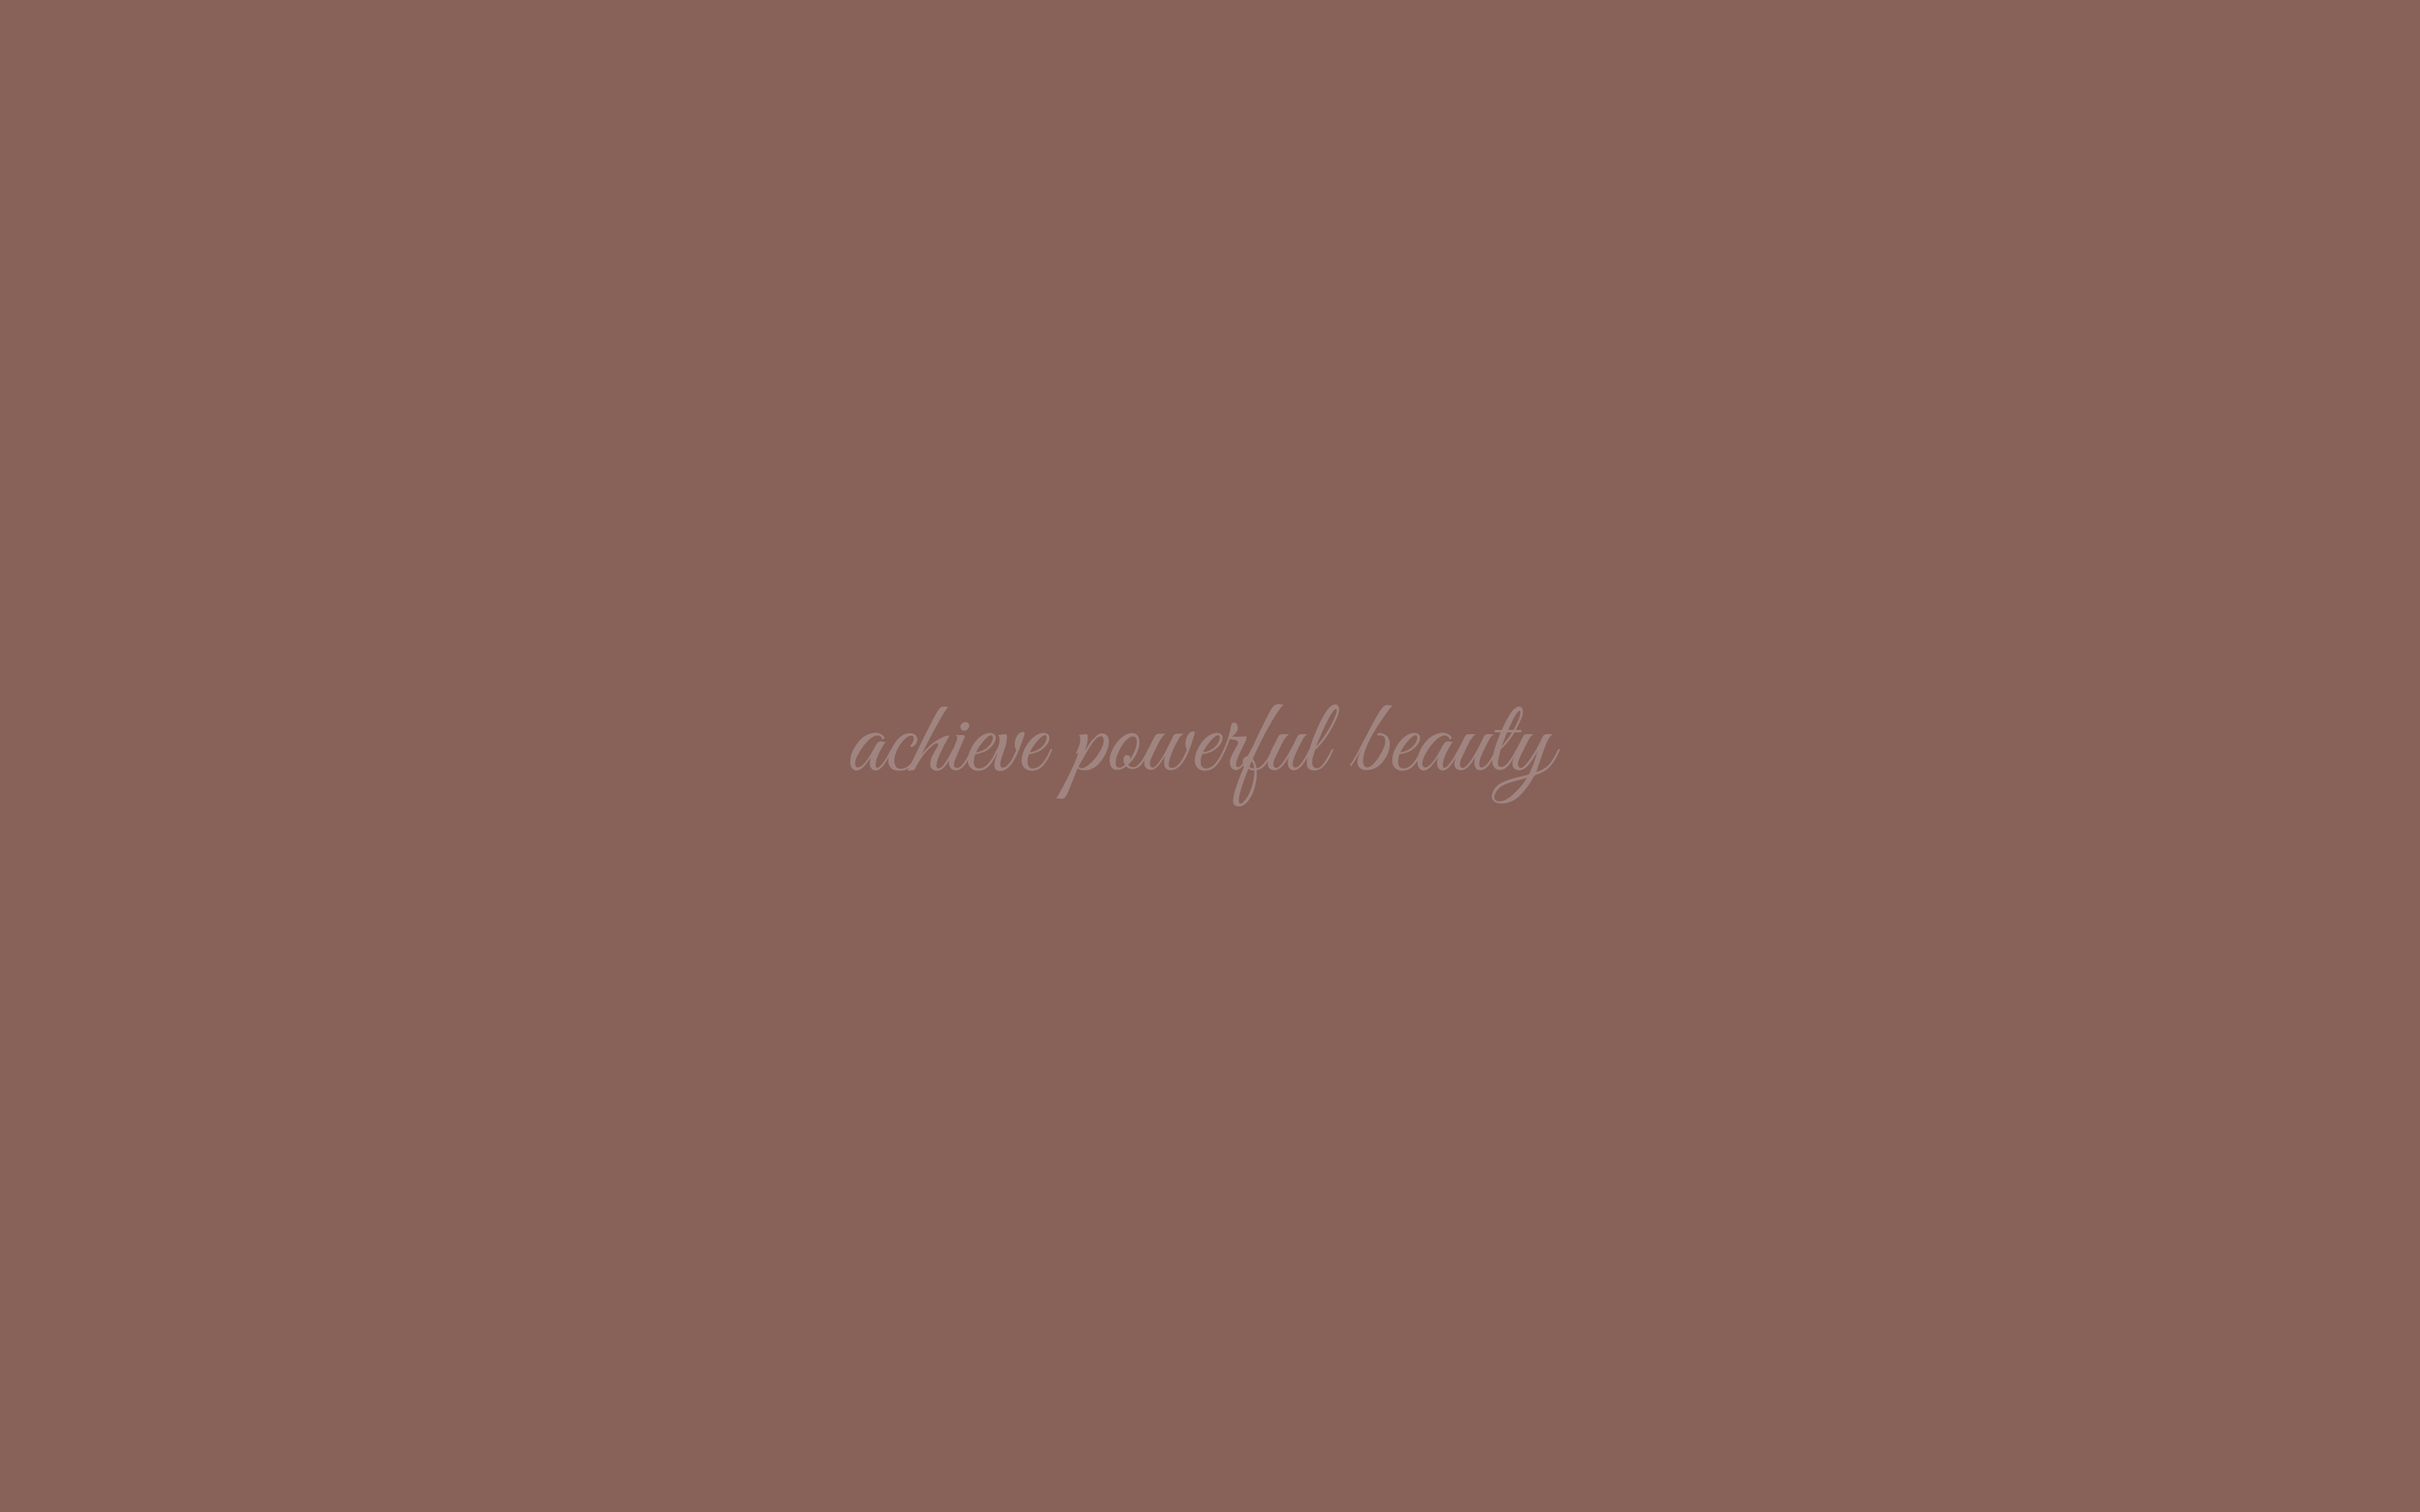 Beige Aesthetic Laptop Wallpapers Top Free Beige Aesthetic Laptop Backgrounds Wallpaperaccess